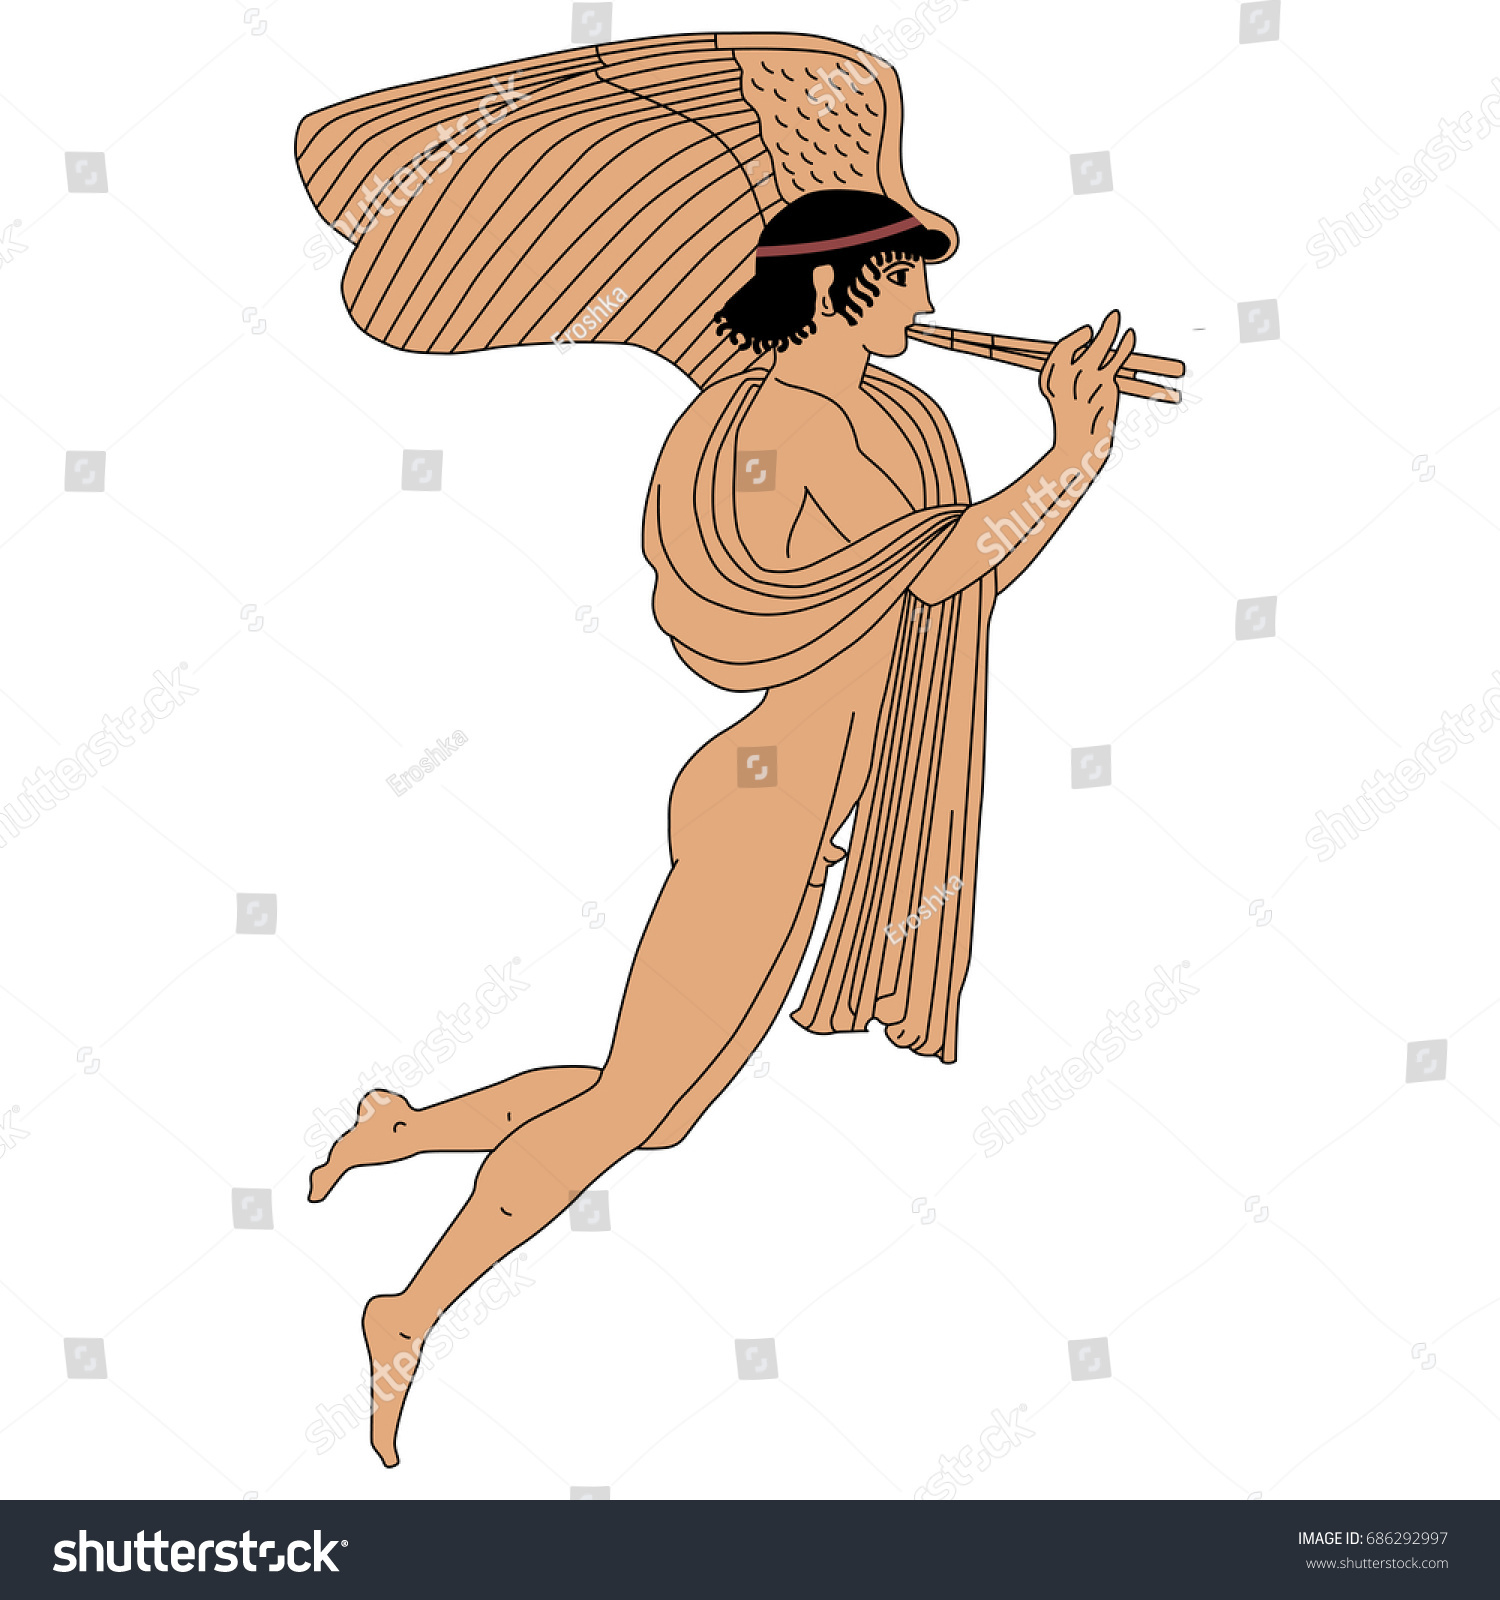 Vector image of ancient Greek god of love Eros. Red-figure pottery style.  Winged mythological male character playing the double flute.